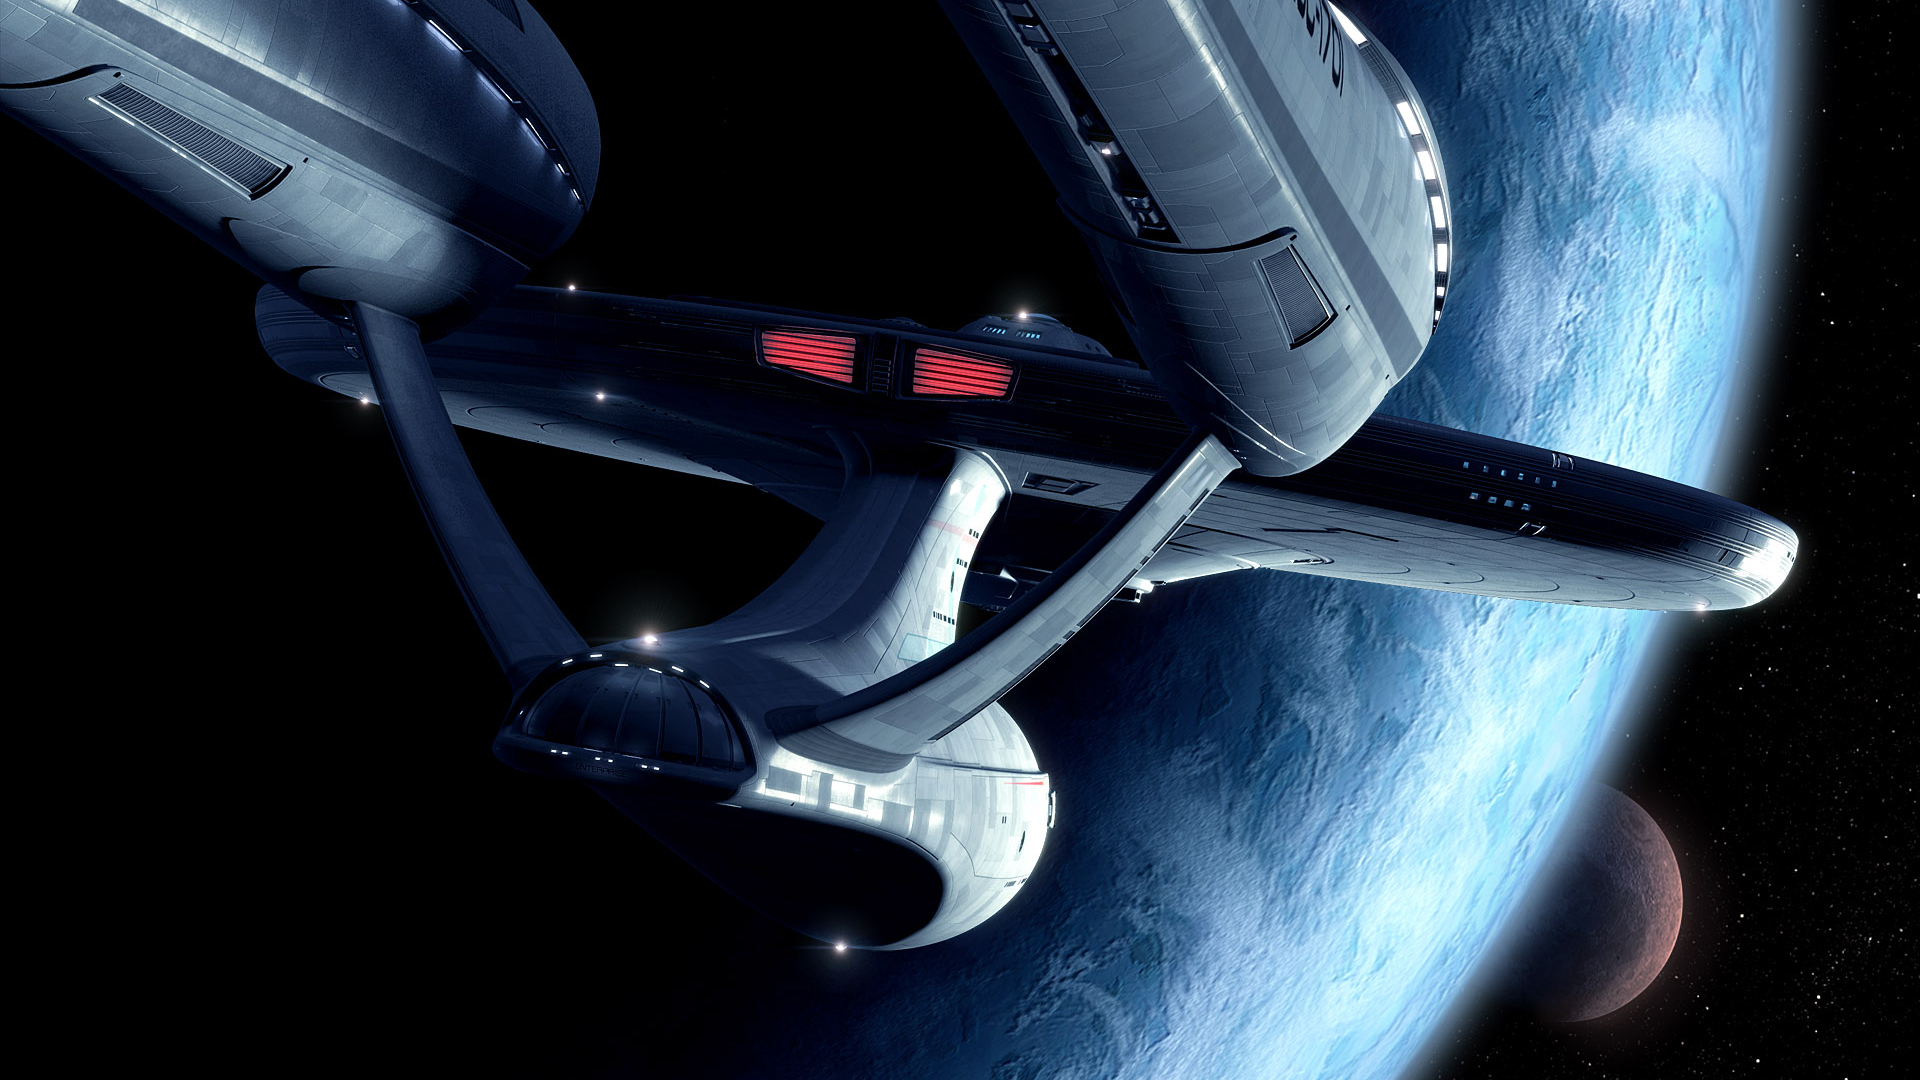 Sci Fi - Star Trek  - Star_trek - Starwars Wallpaper